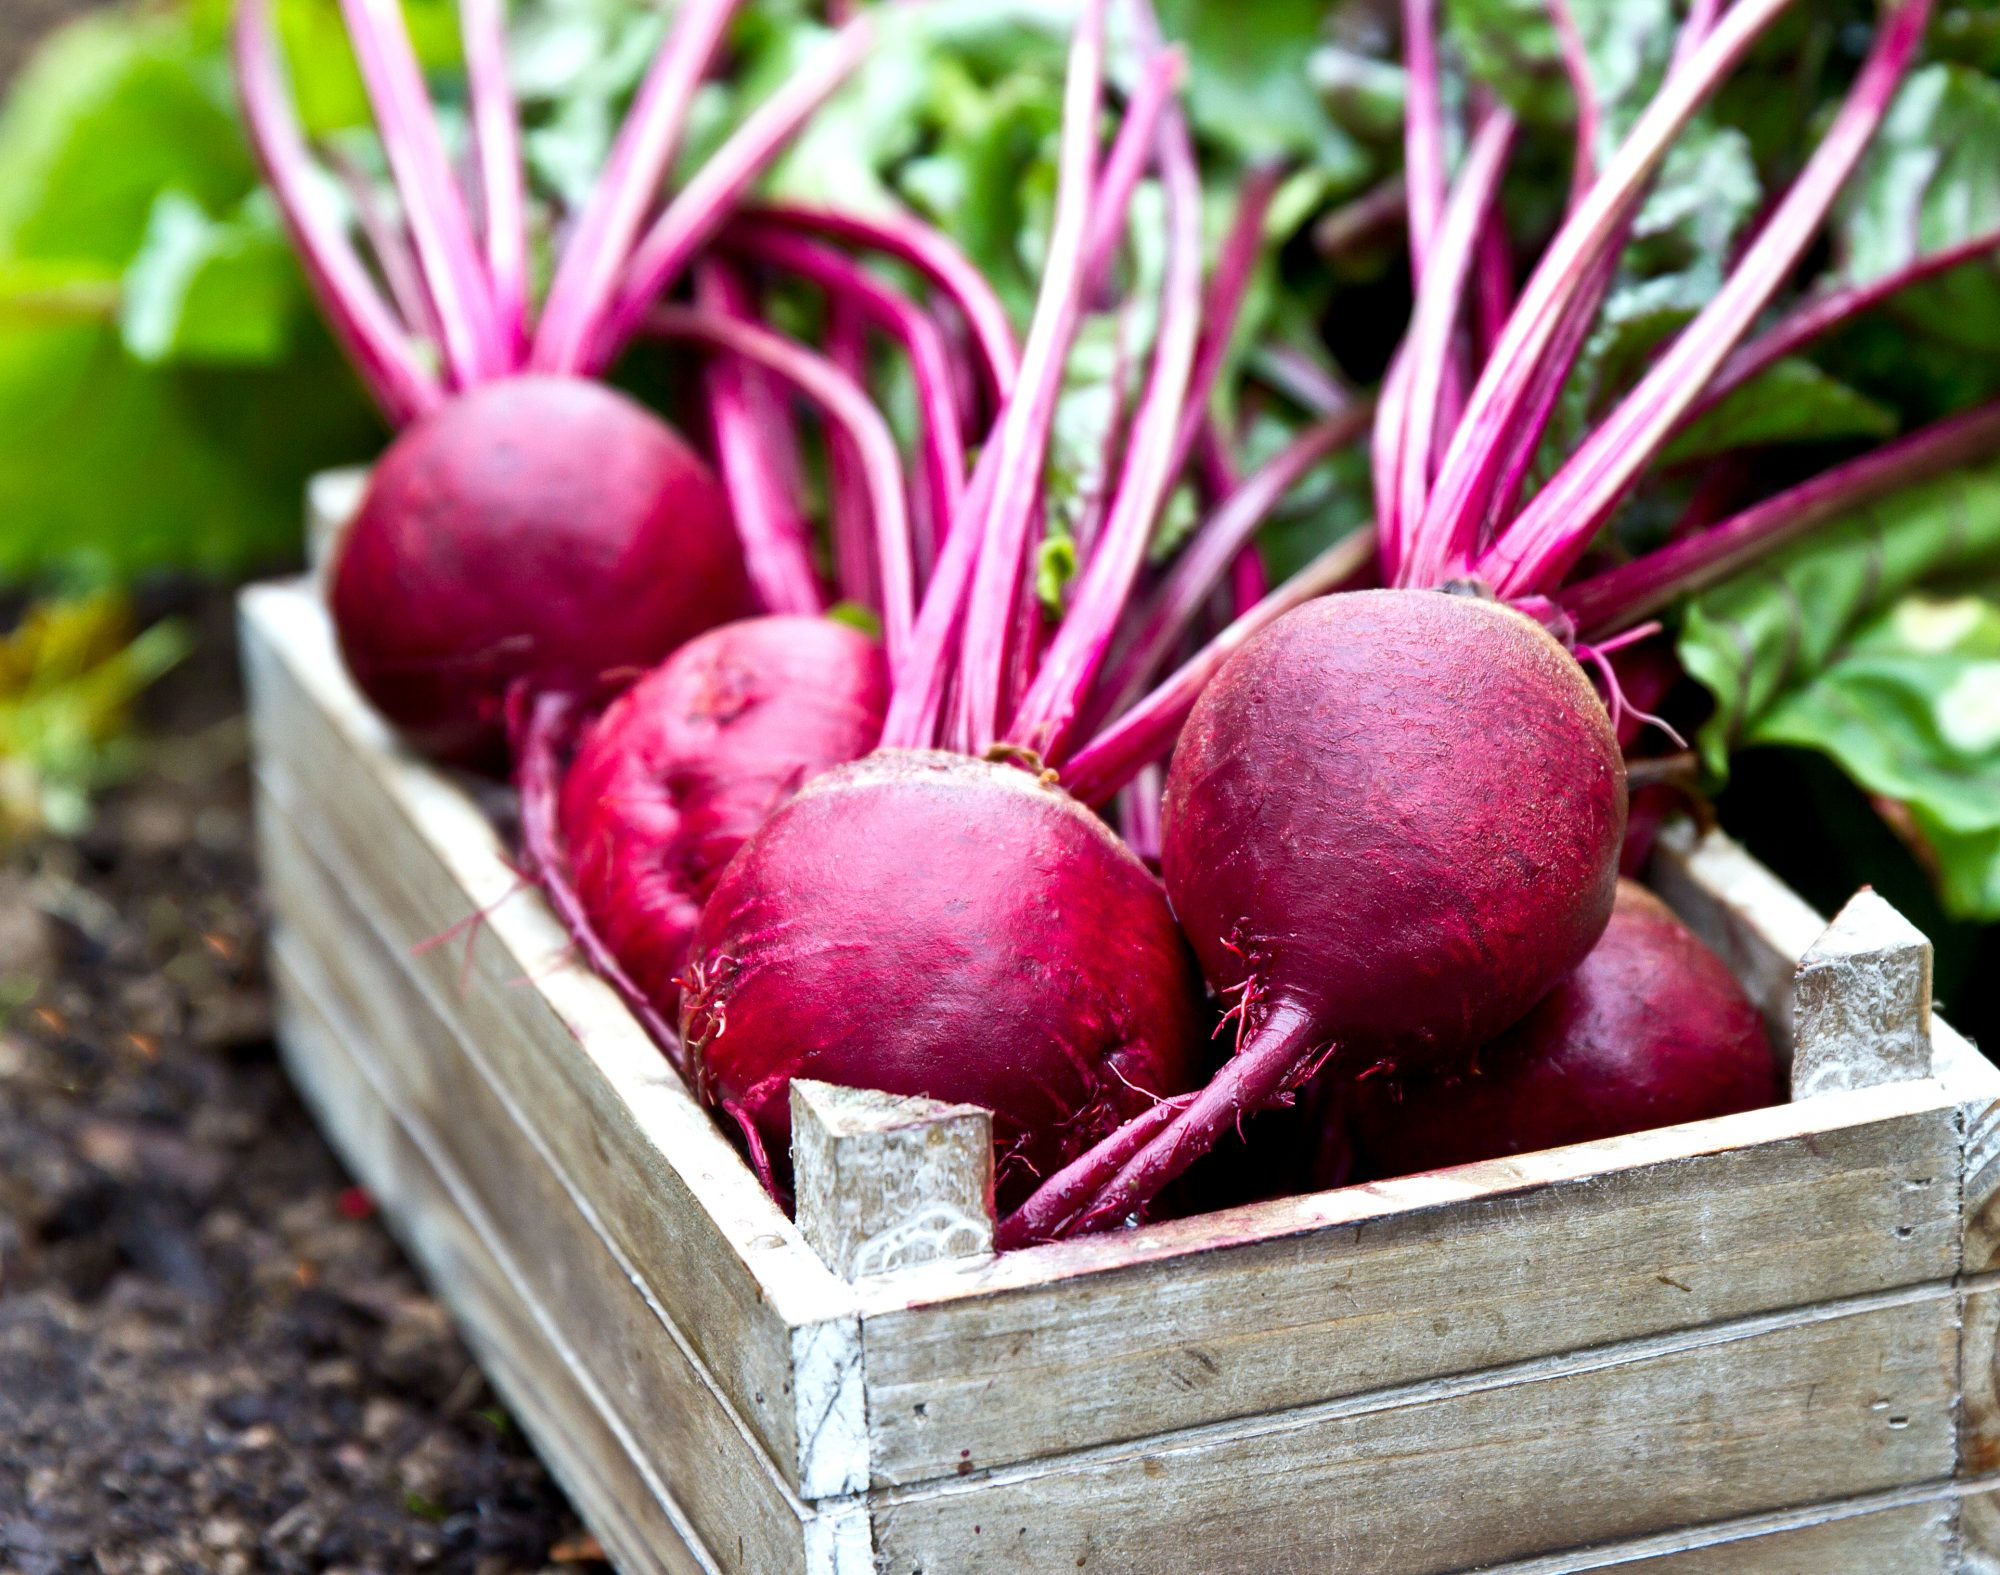 Why Do Beets Make Your Pee Turn Pink? - MyRecipes